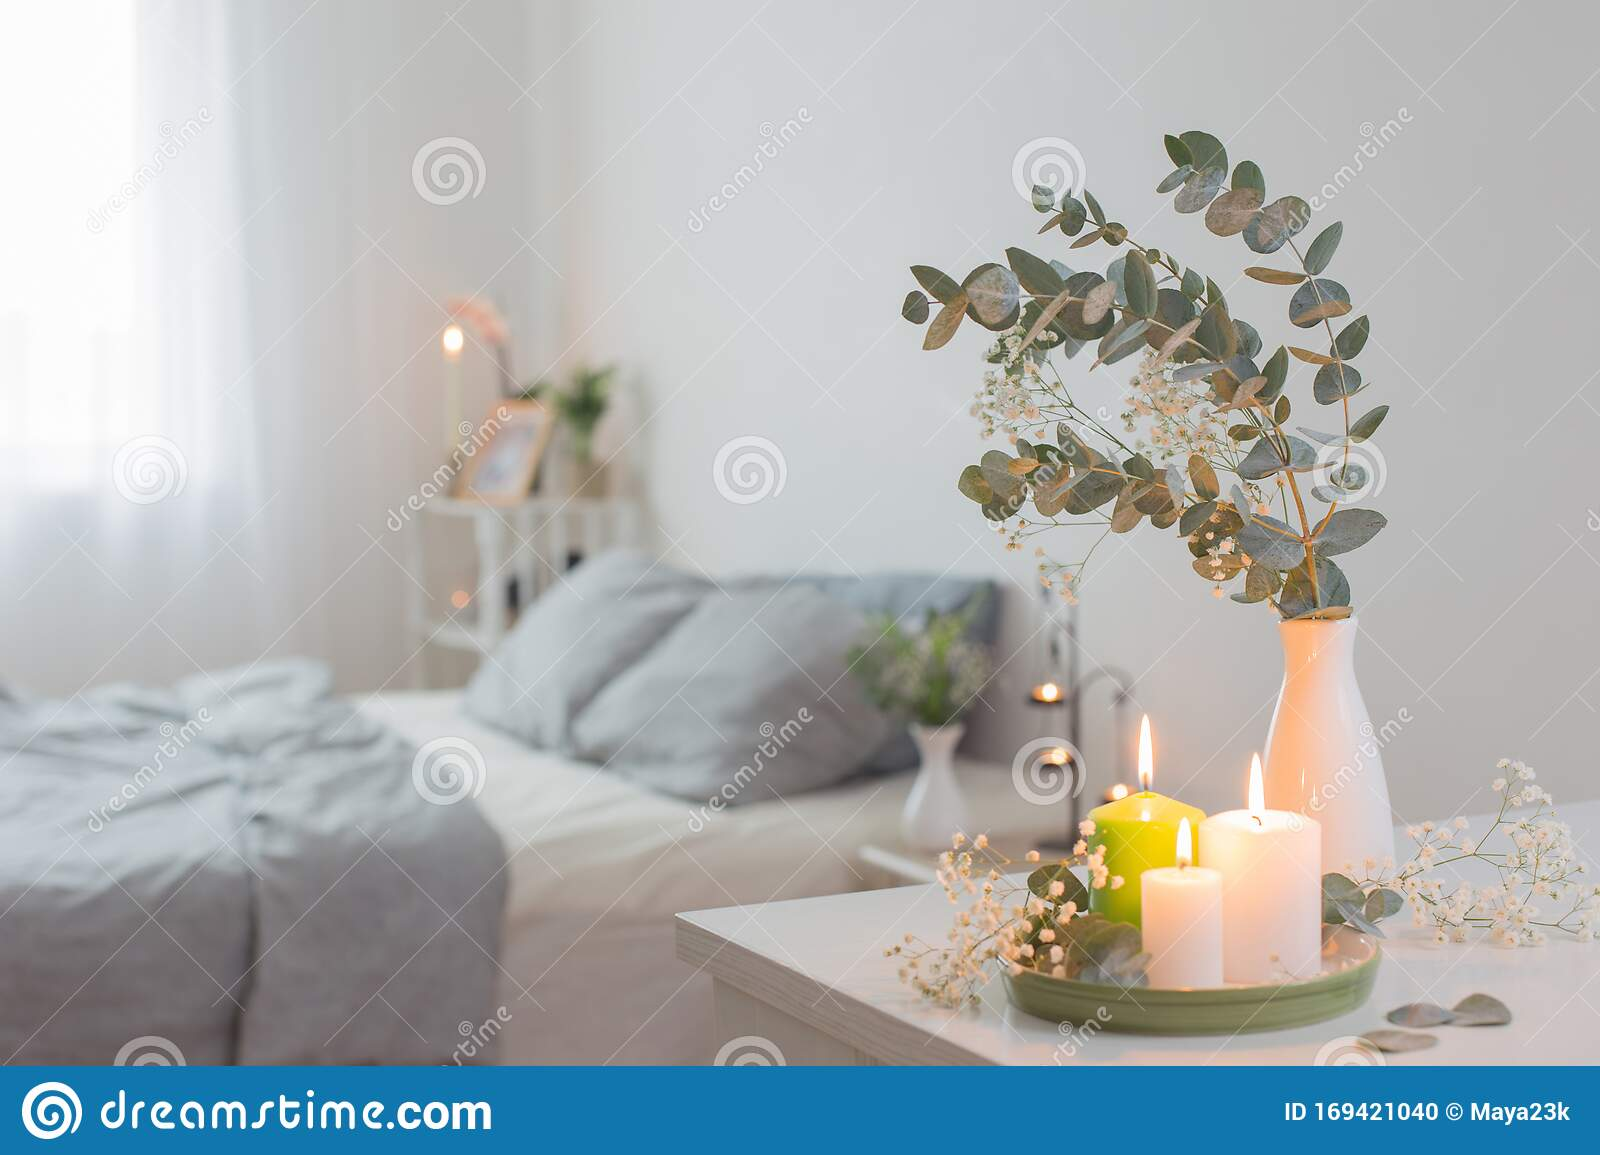 Candles And Eucalyptus In Vase In White Bedroom Stock Photo Image Of Decorate Cozy 169421040